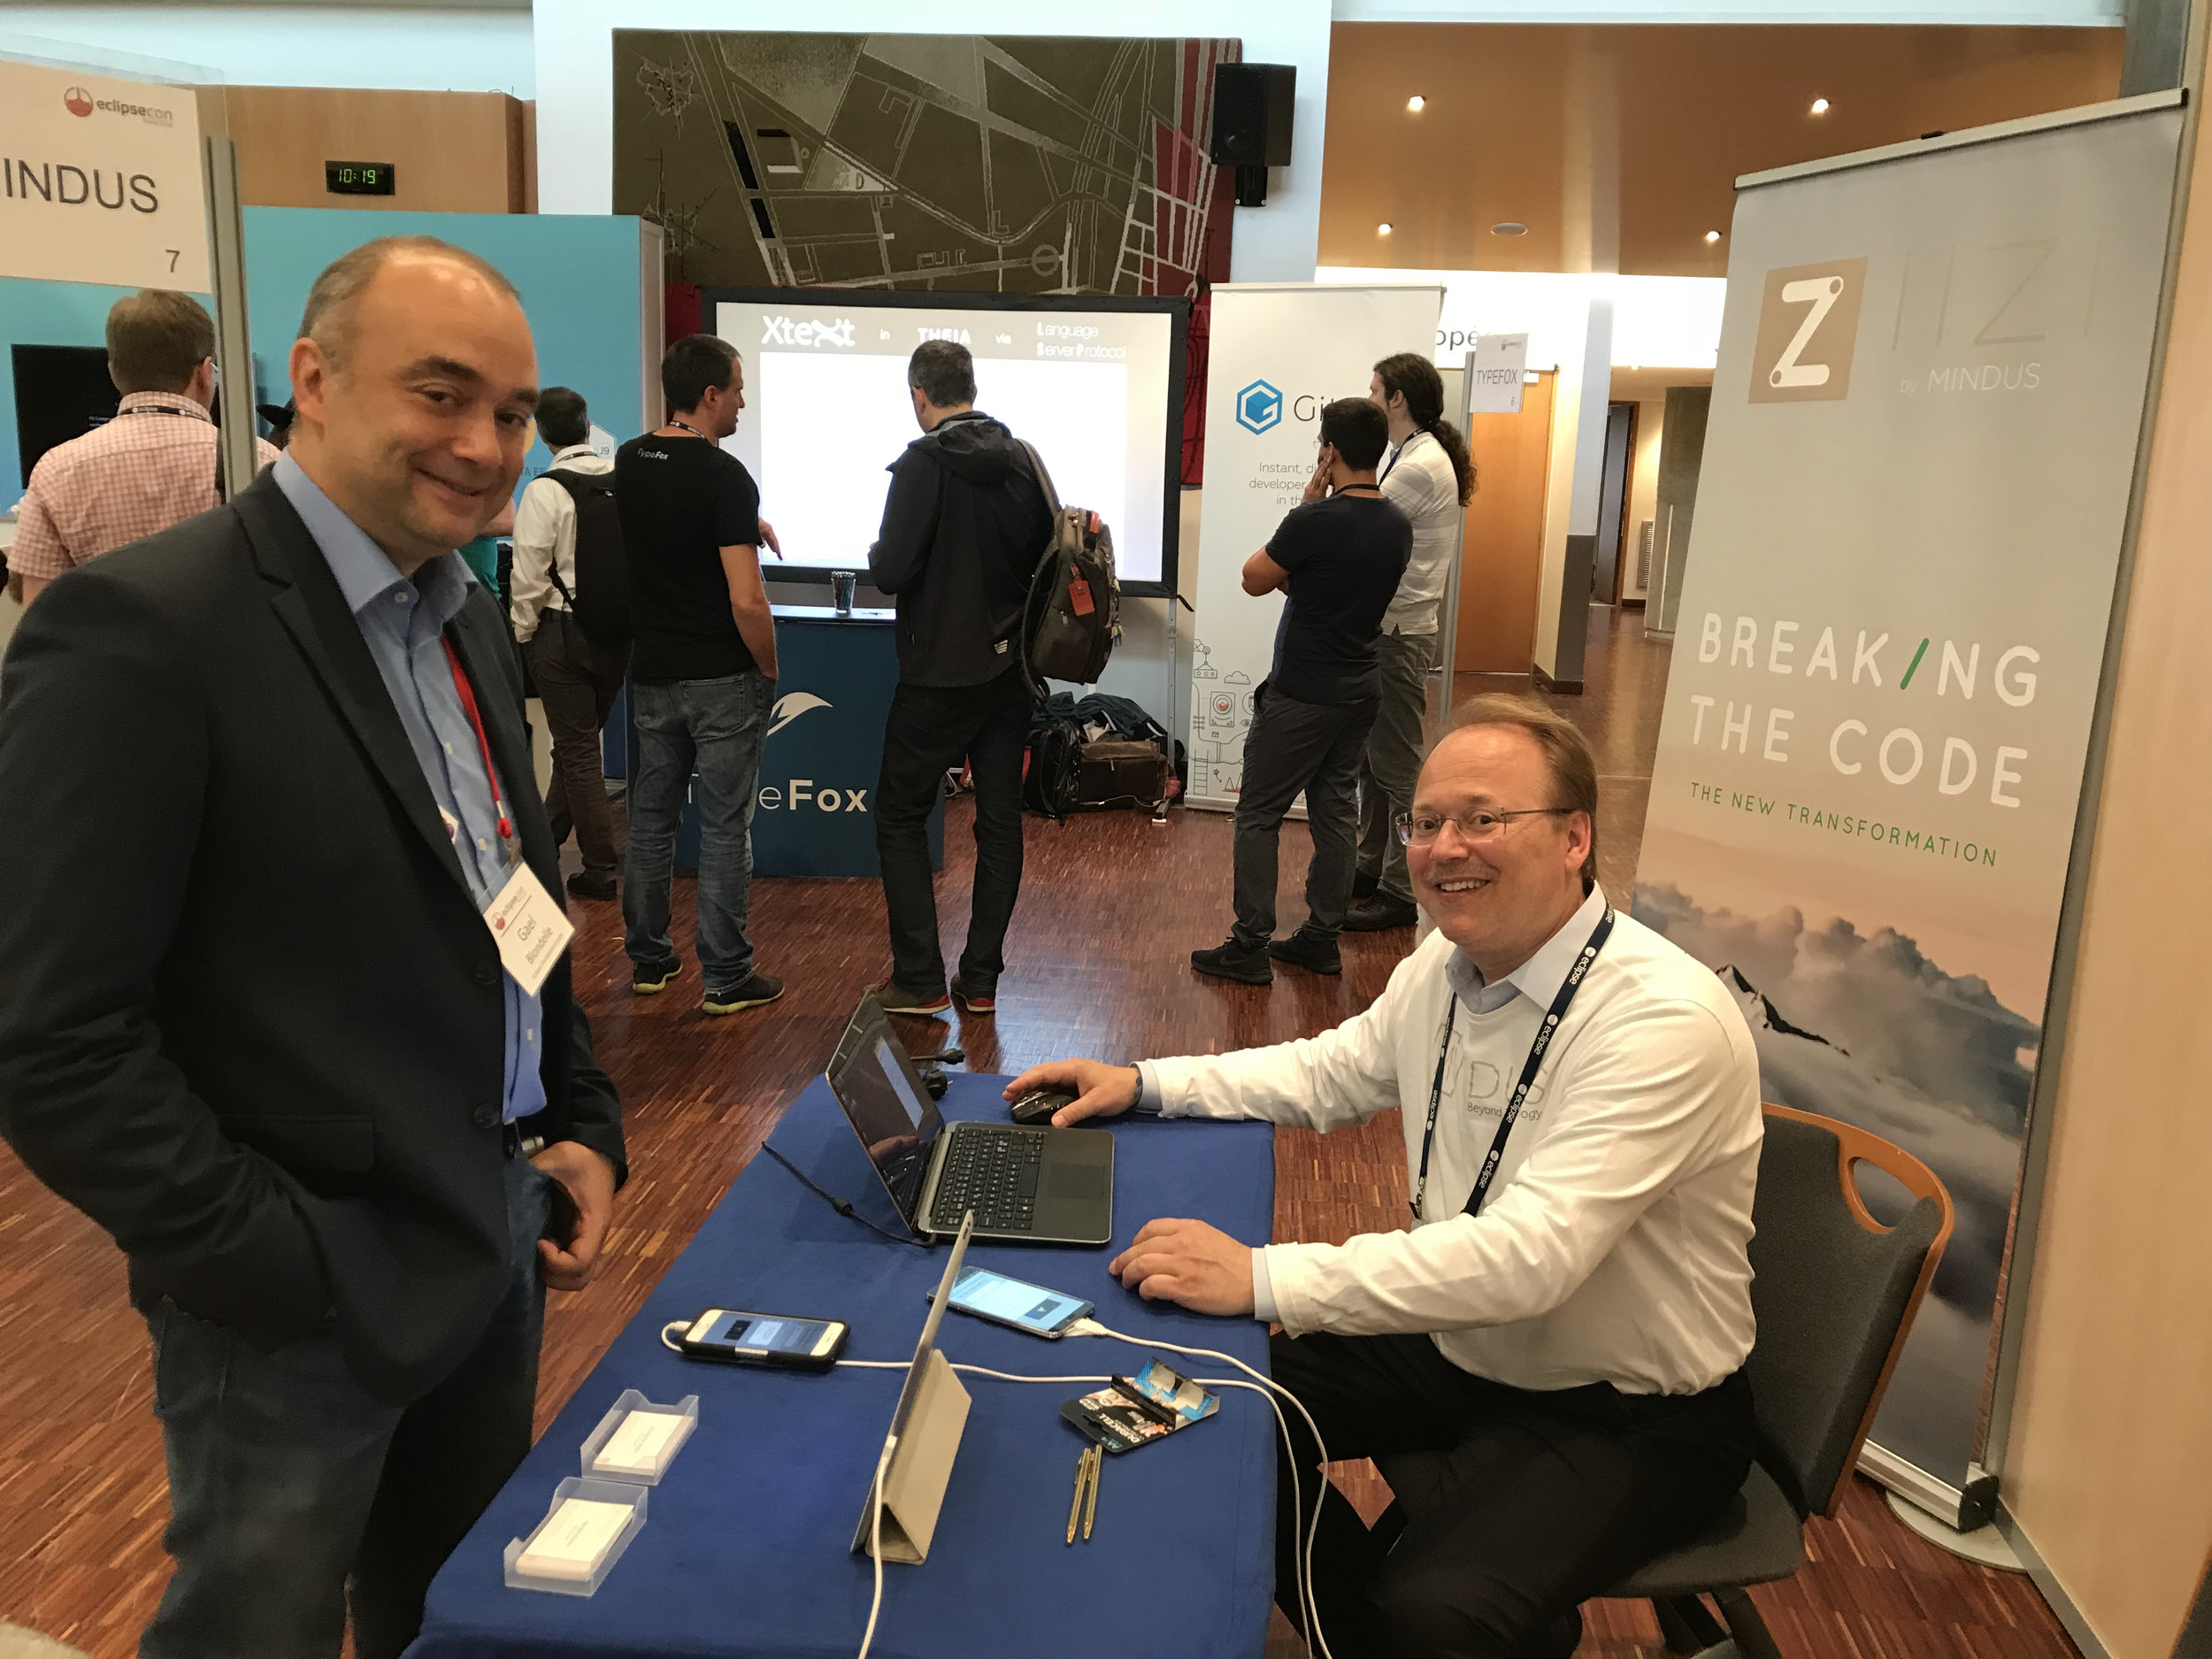 EclipseCon's organizer Gaël Blondelle, Director of European Ecosystem Development at Eclipse Foundation visiting the Mindus booth